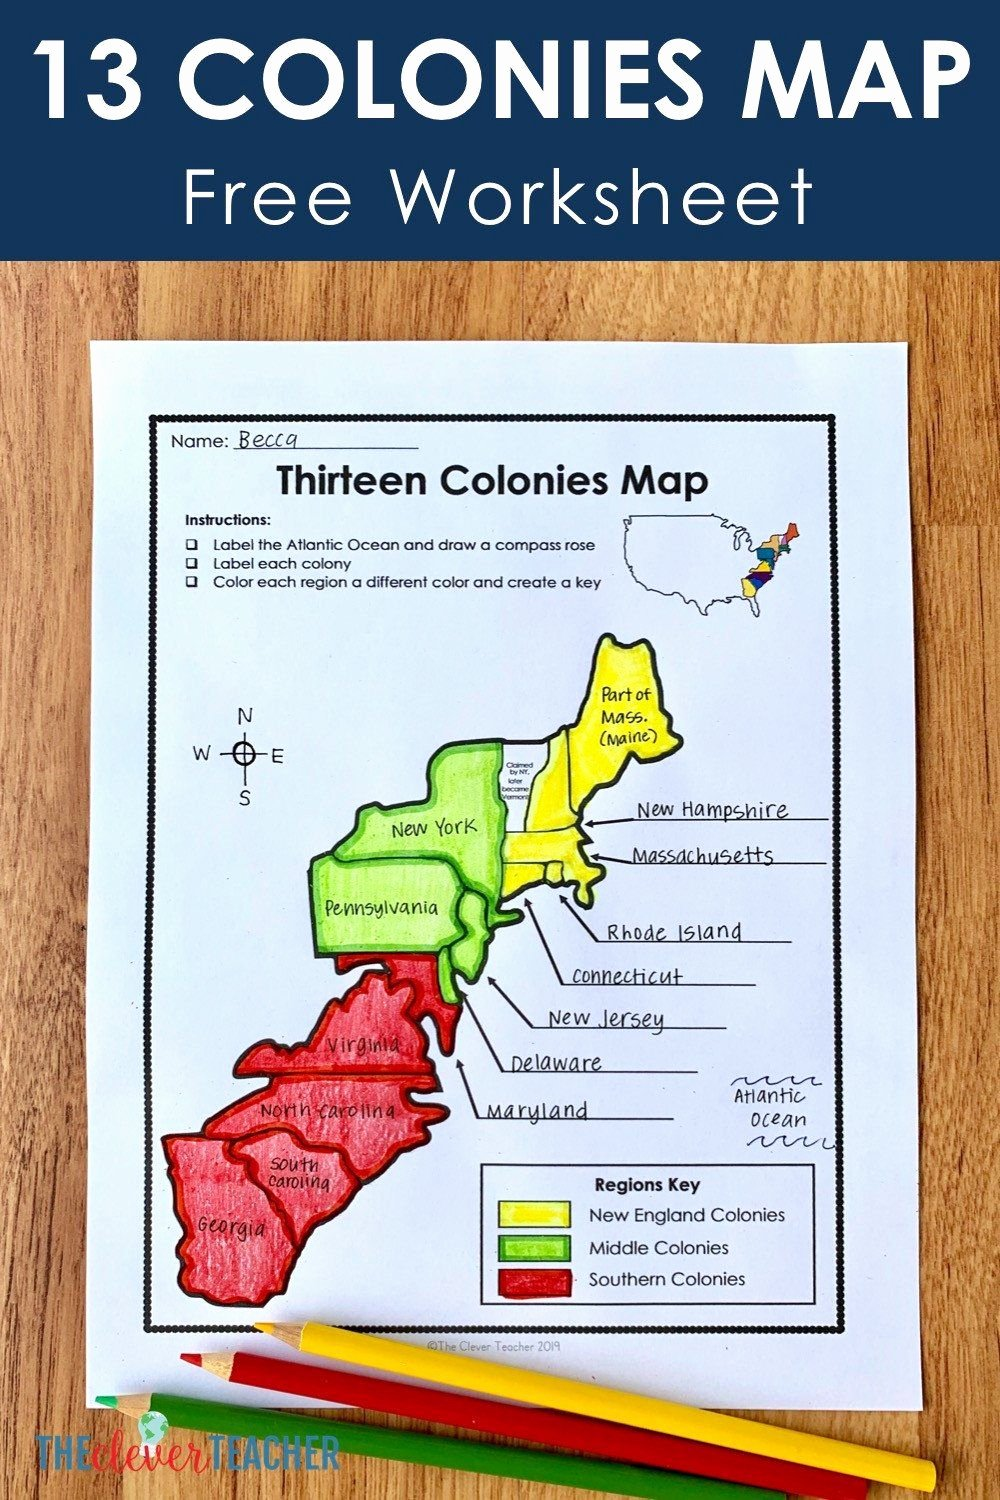 Jamestown Colony Worksheet 5th Grade top Jamestown Colony Worksheet 5th Grade 13 Colonies Free Map